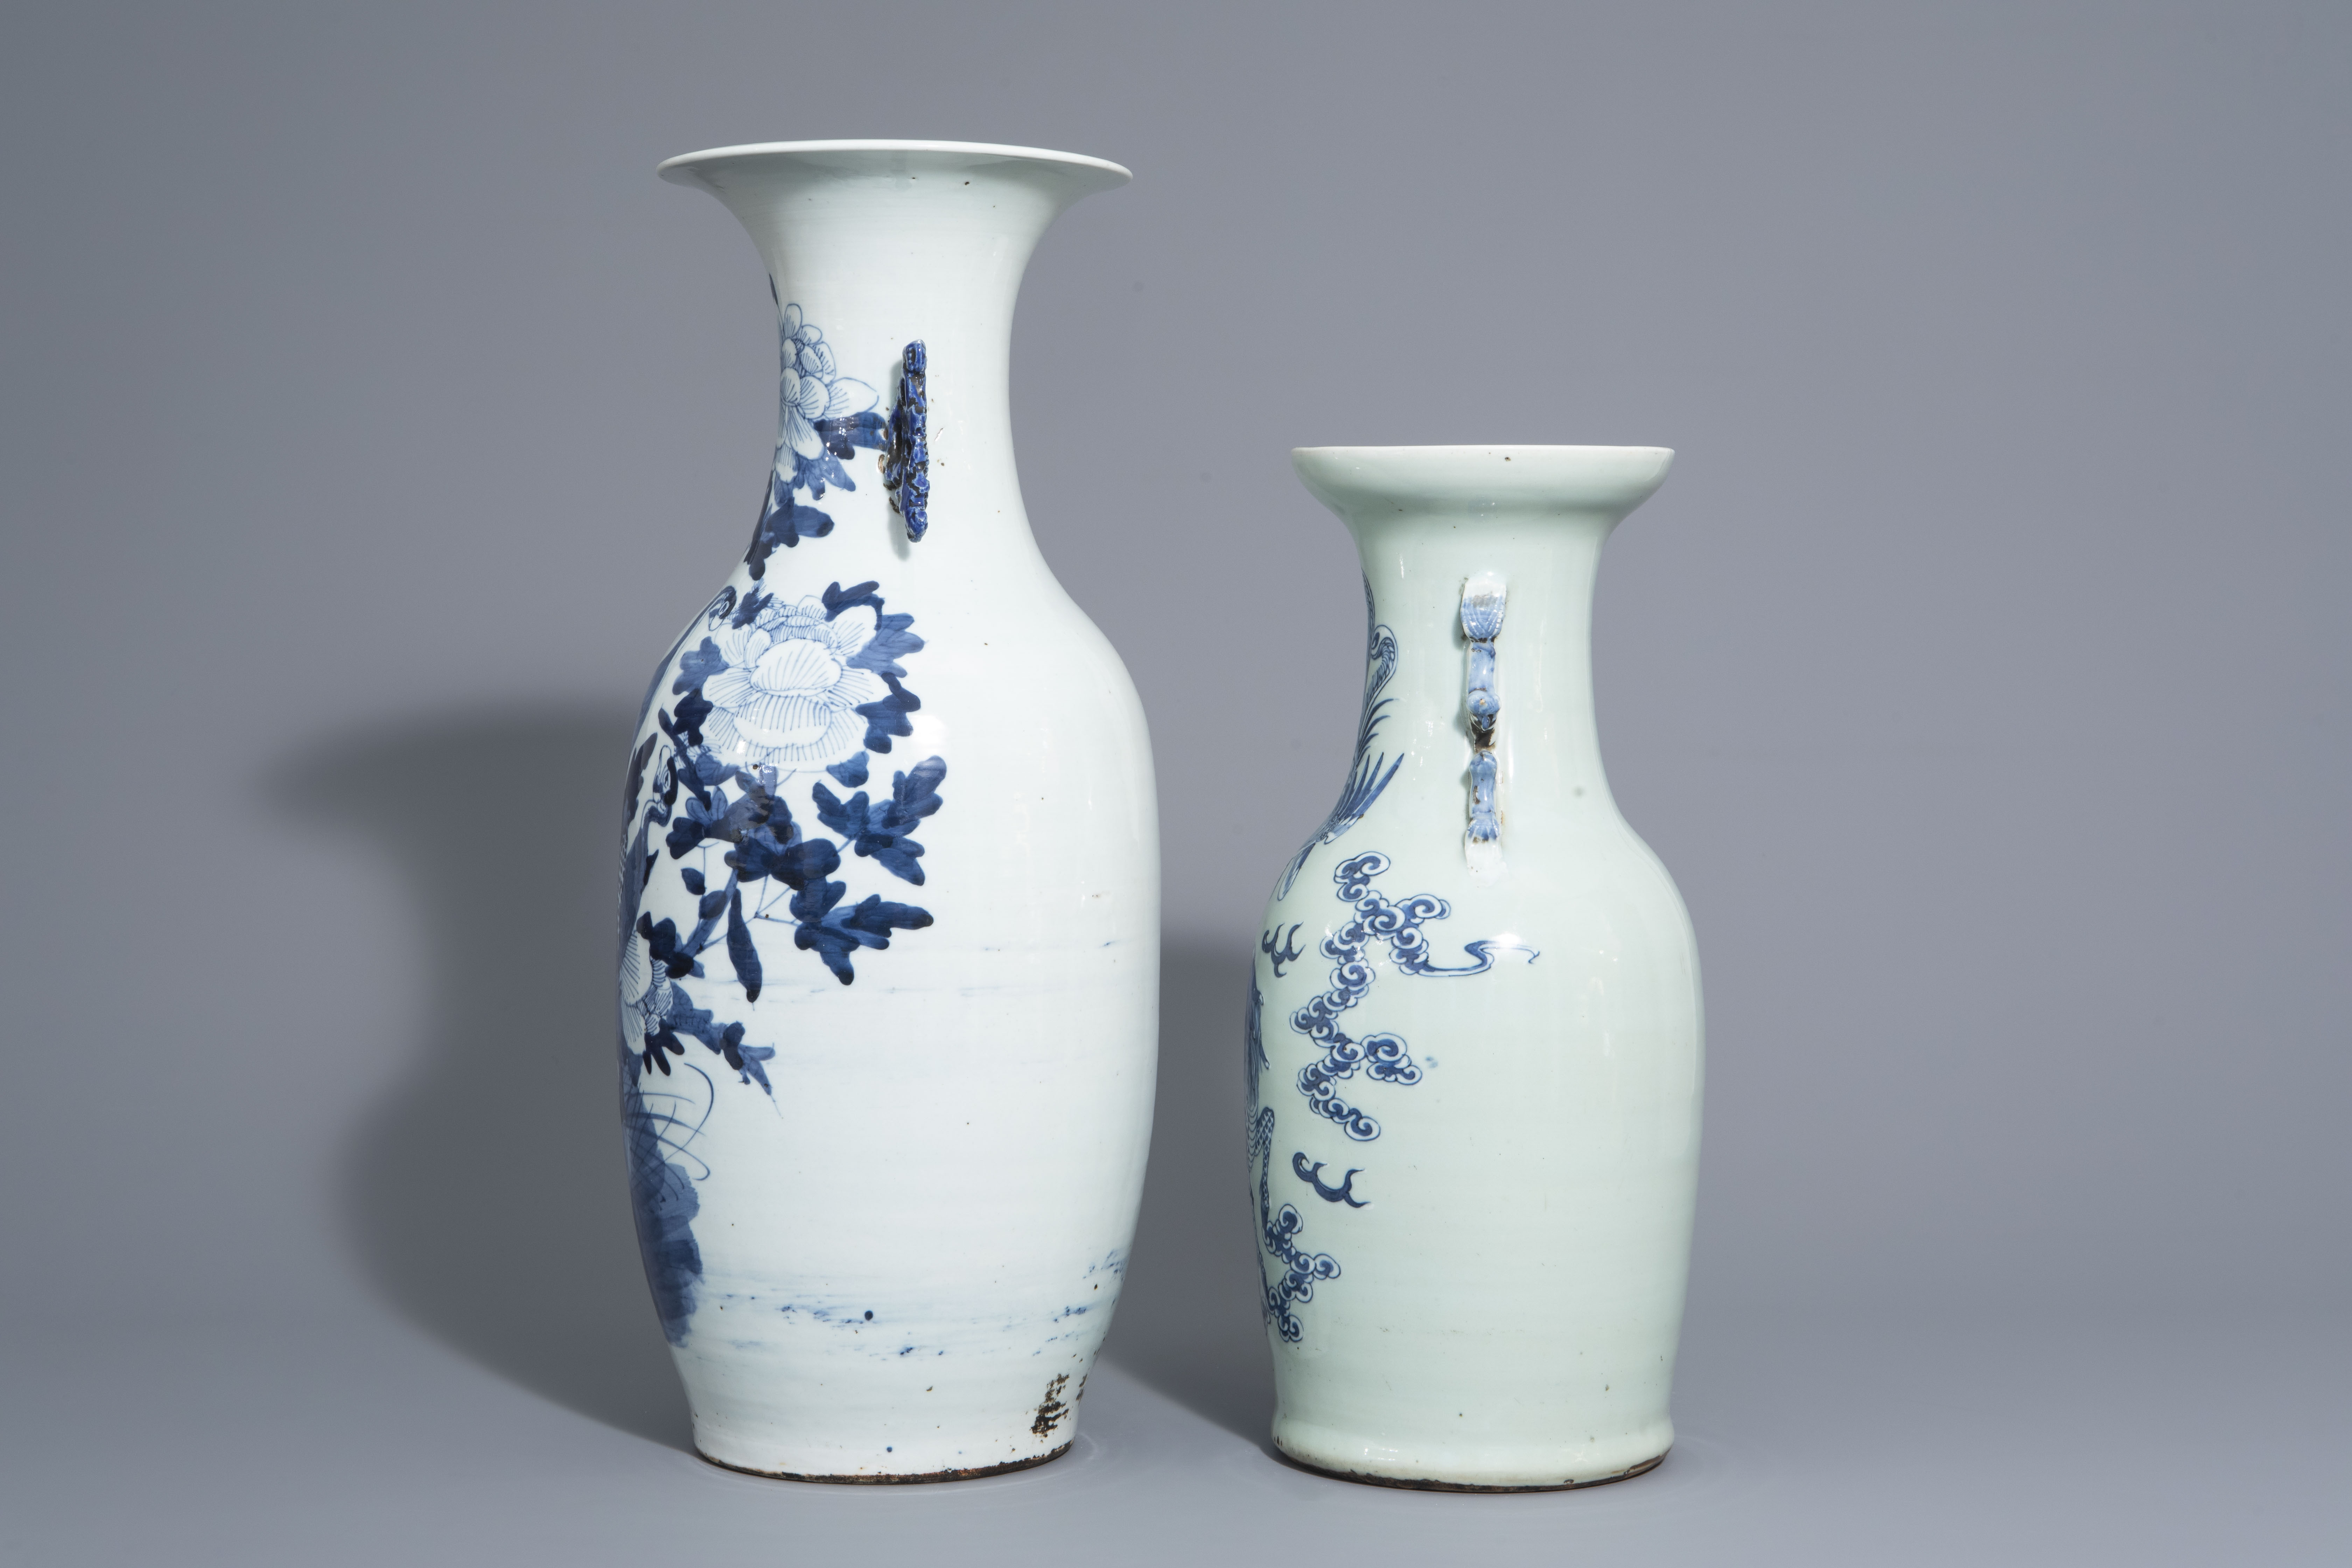 Two Chinese blue and white vases with mythological animals, 19th C. - Image 5 of 7